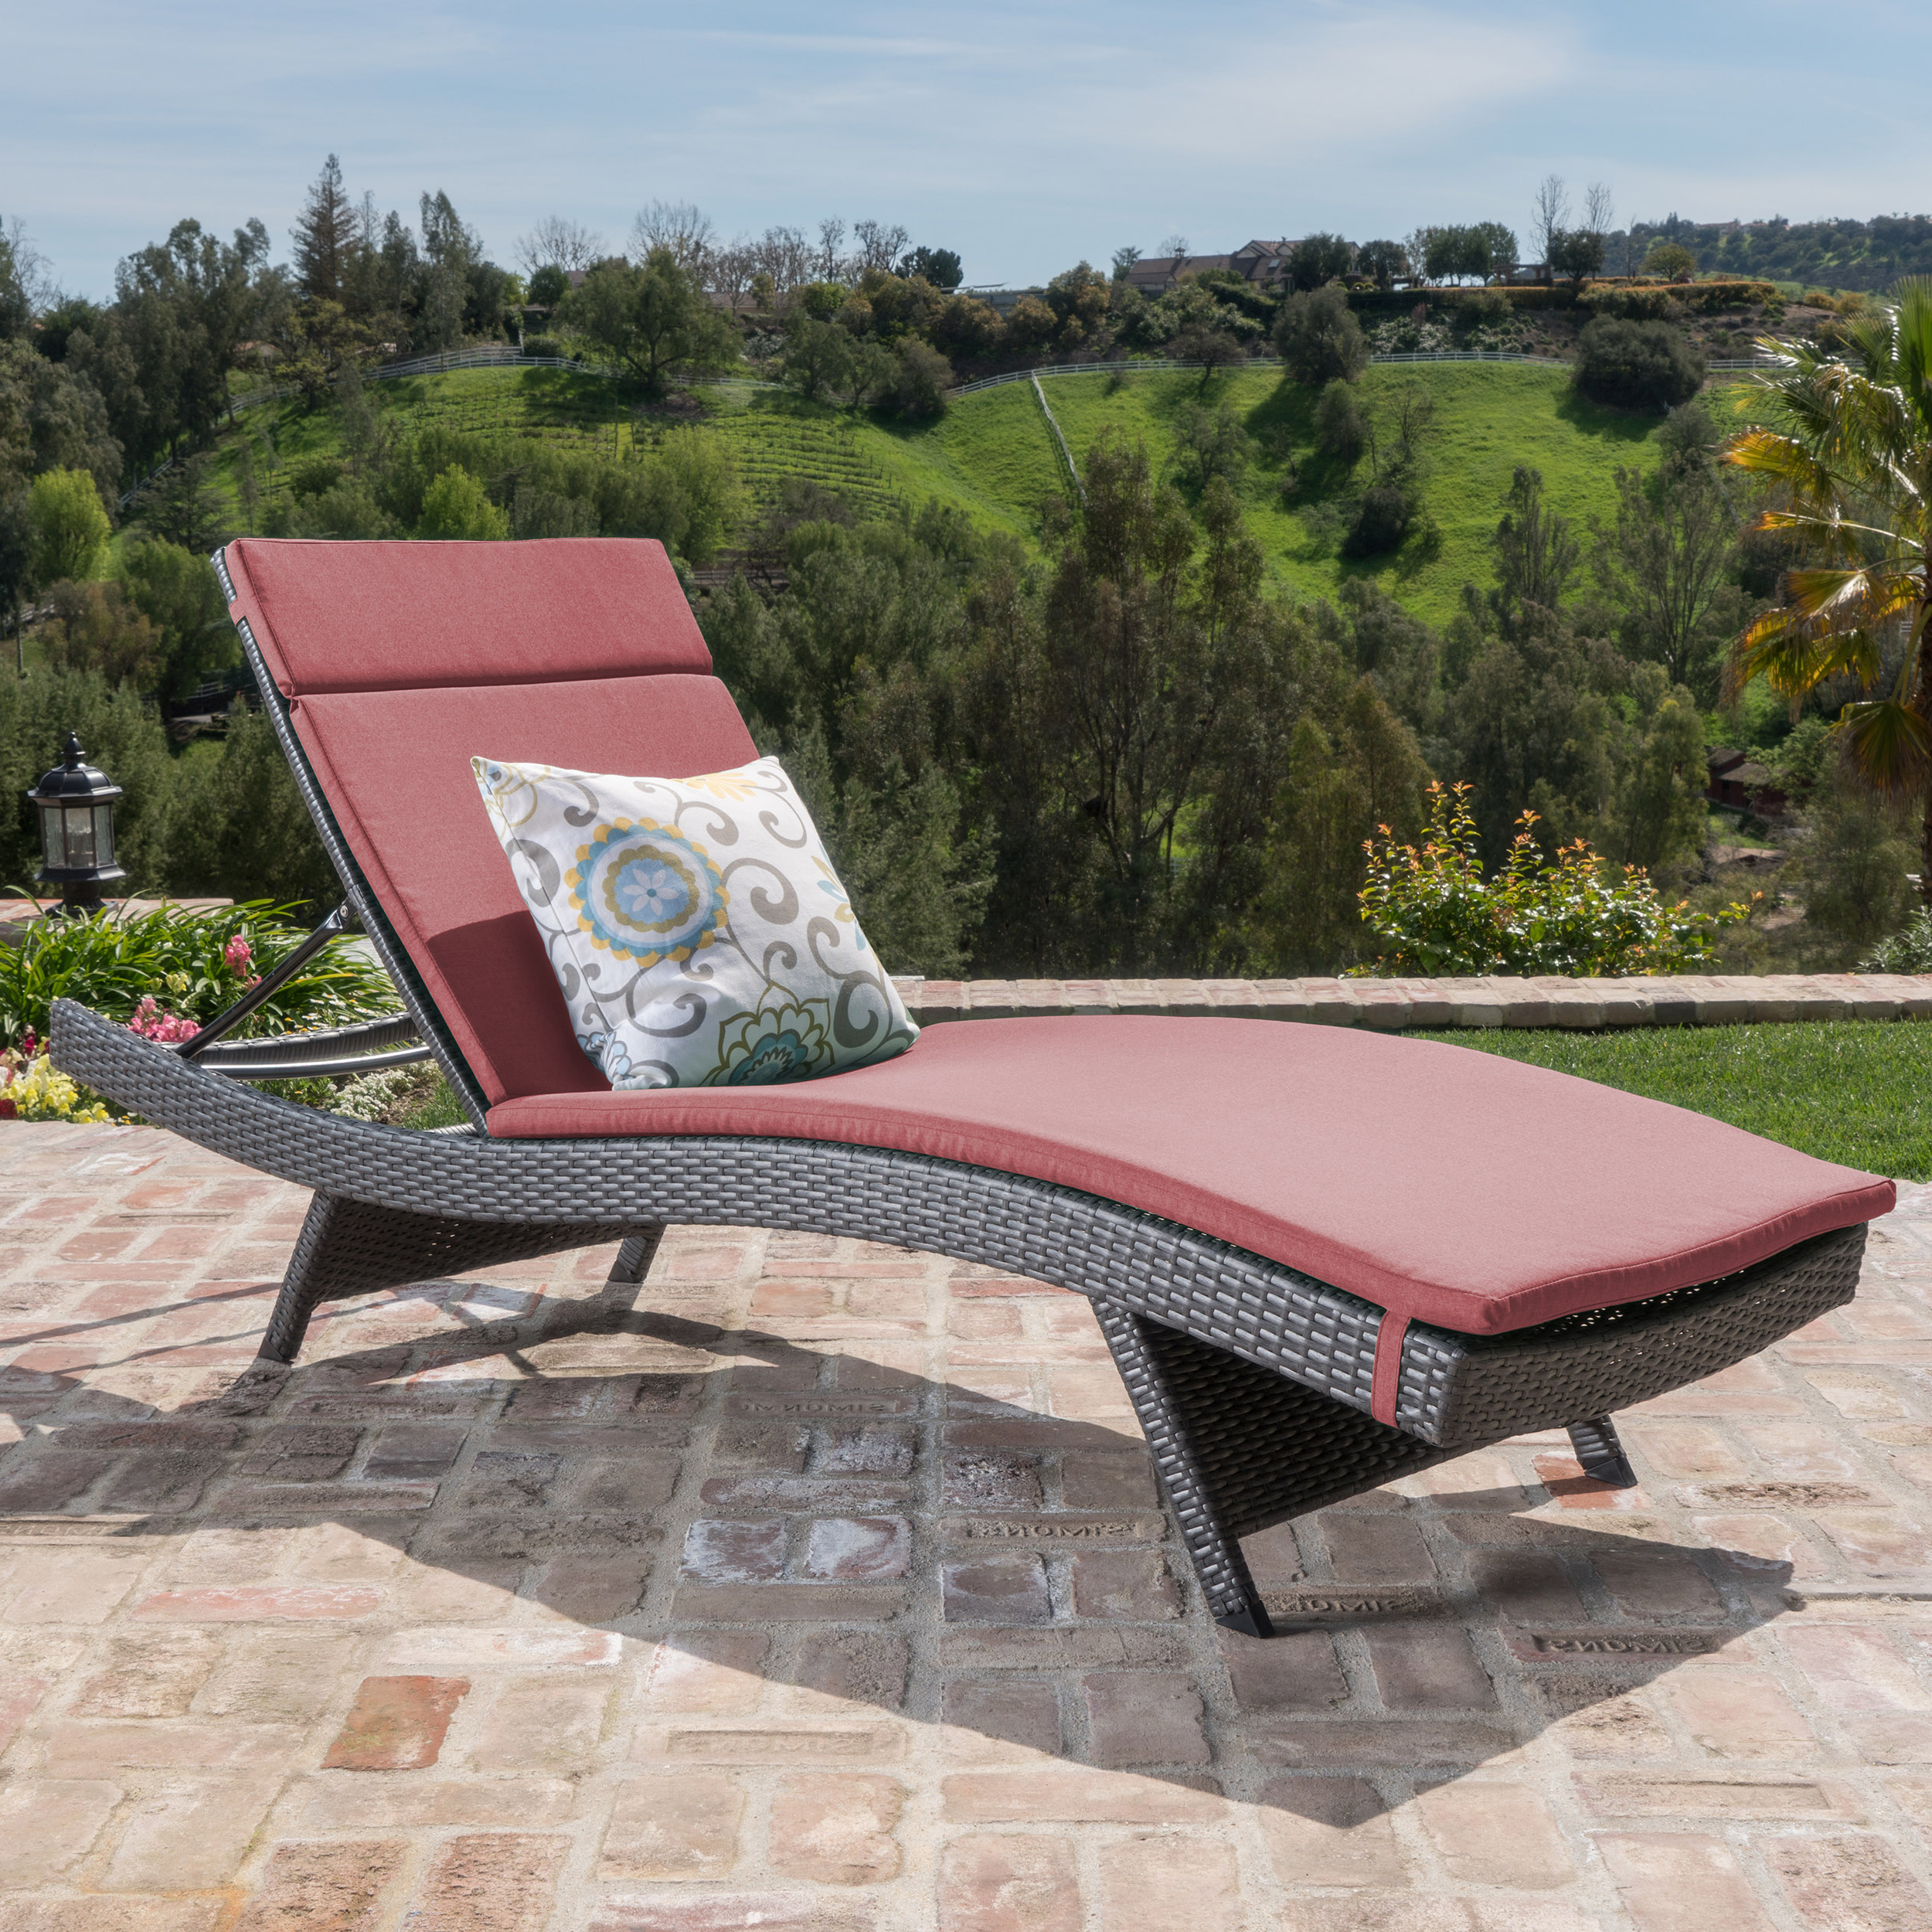 Most Up To Date Anthony Outdoor Wicker Adjustable Chaise Lounge With Cushion, Grey, Beige Throughout Outdoor Wicker Adjustable Chaise Lounges With Cushions (View 13 of 25)